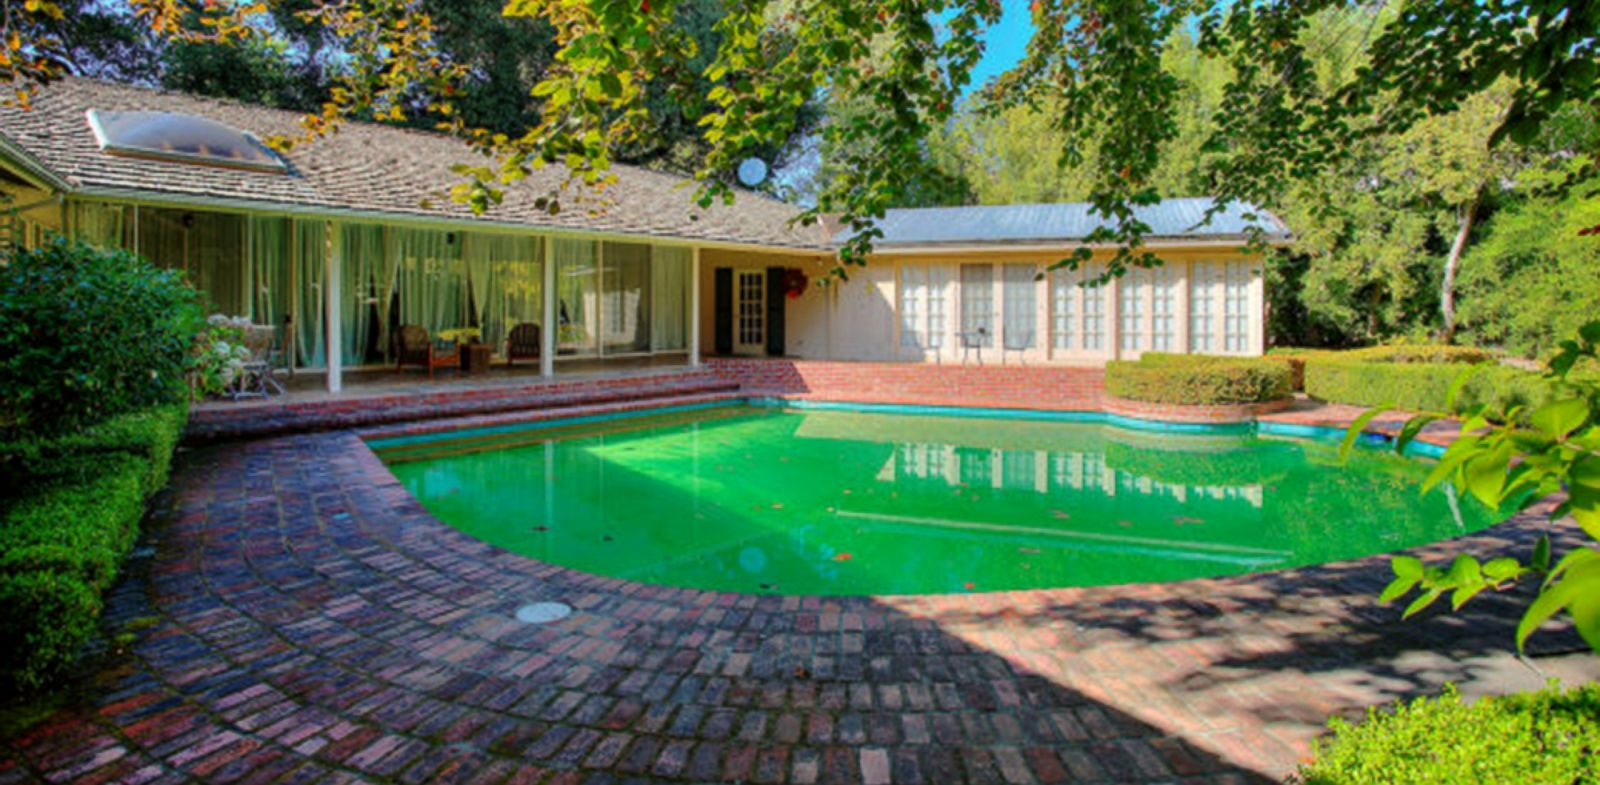 PHOTO: Facebook founder Mark Zuckerberg purchased four of the surrounding houses near his Palo Alto home for added privacy, Oct. 11, 2013.